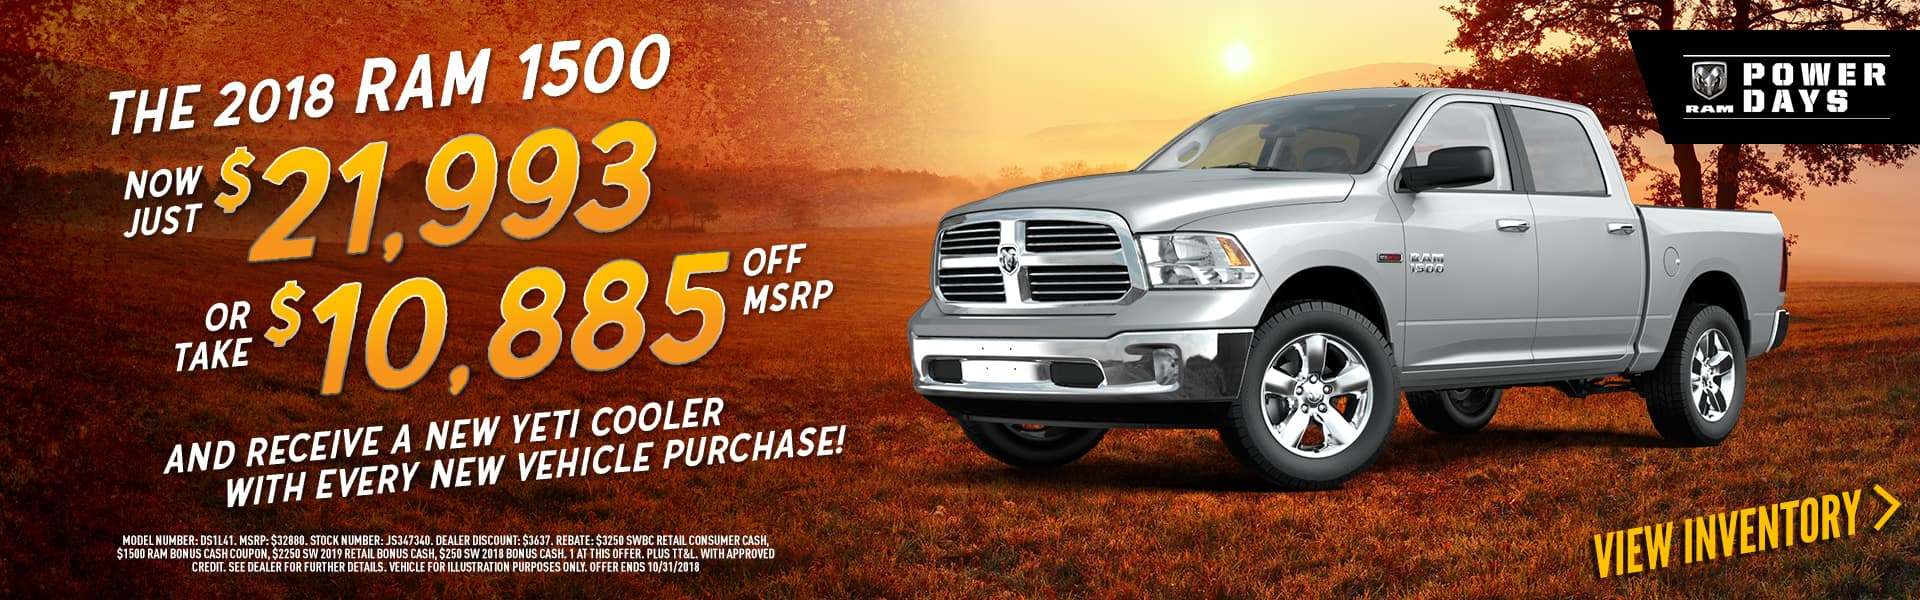 deals-near-me-beaumont-tx-2018-ram-1500